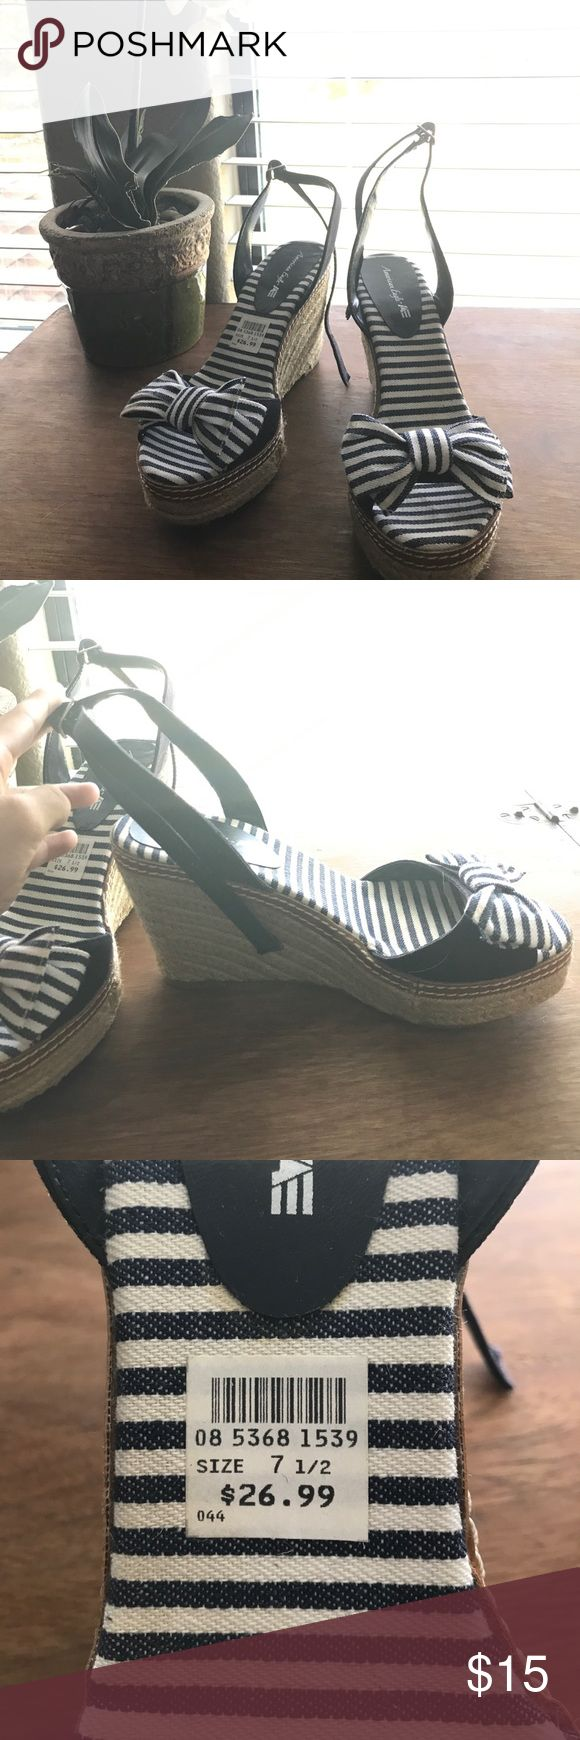 🆕American Eagle striped sailor heels Never worn, I got them as a gift but they weren't my size. Straps in the back to wrap around your ankle. American Eagle Outfitters Shoes Heels